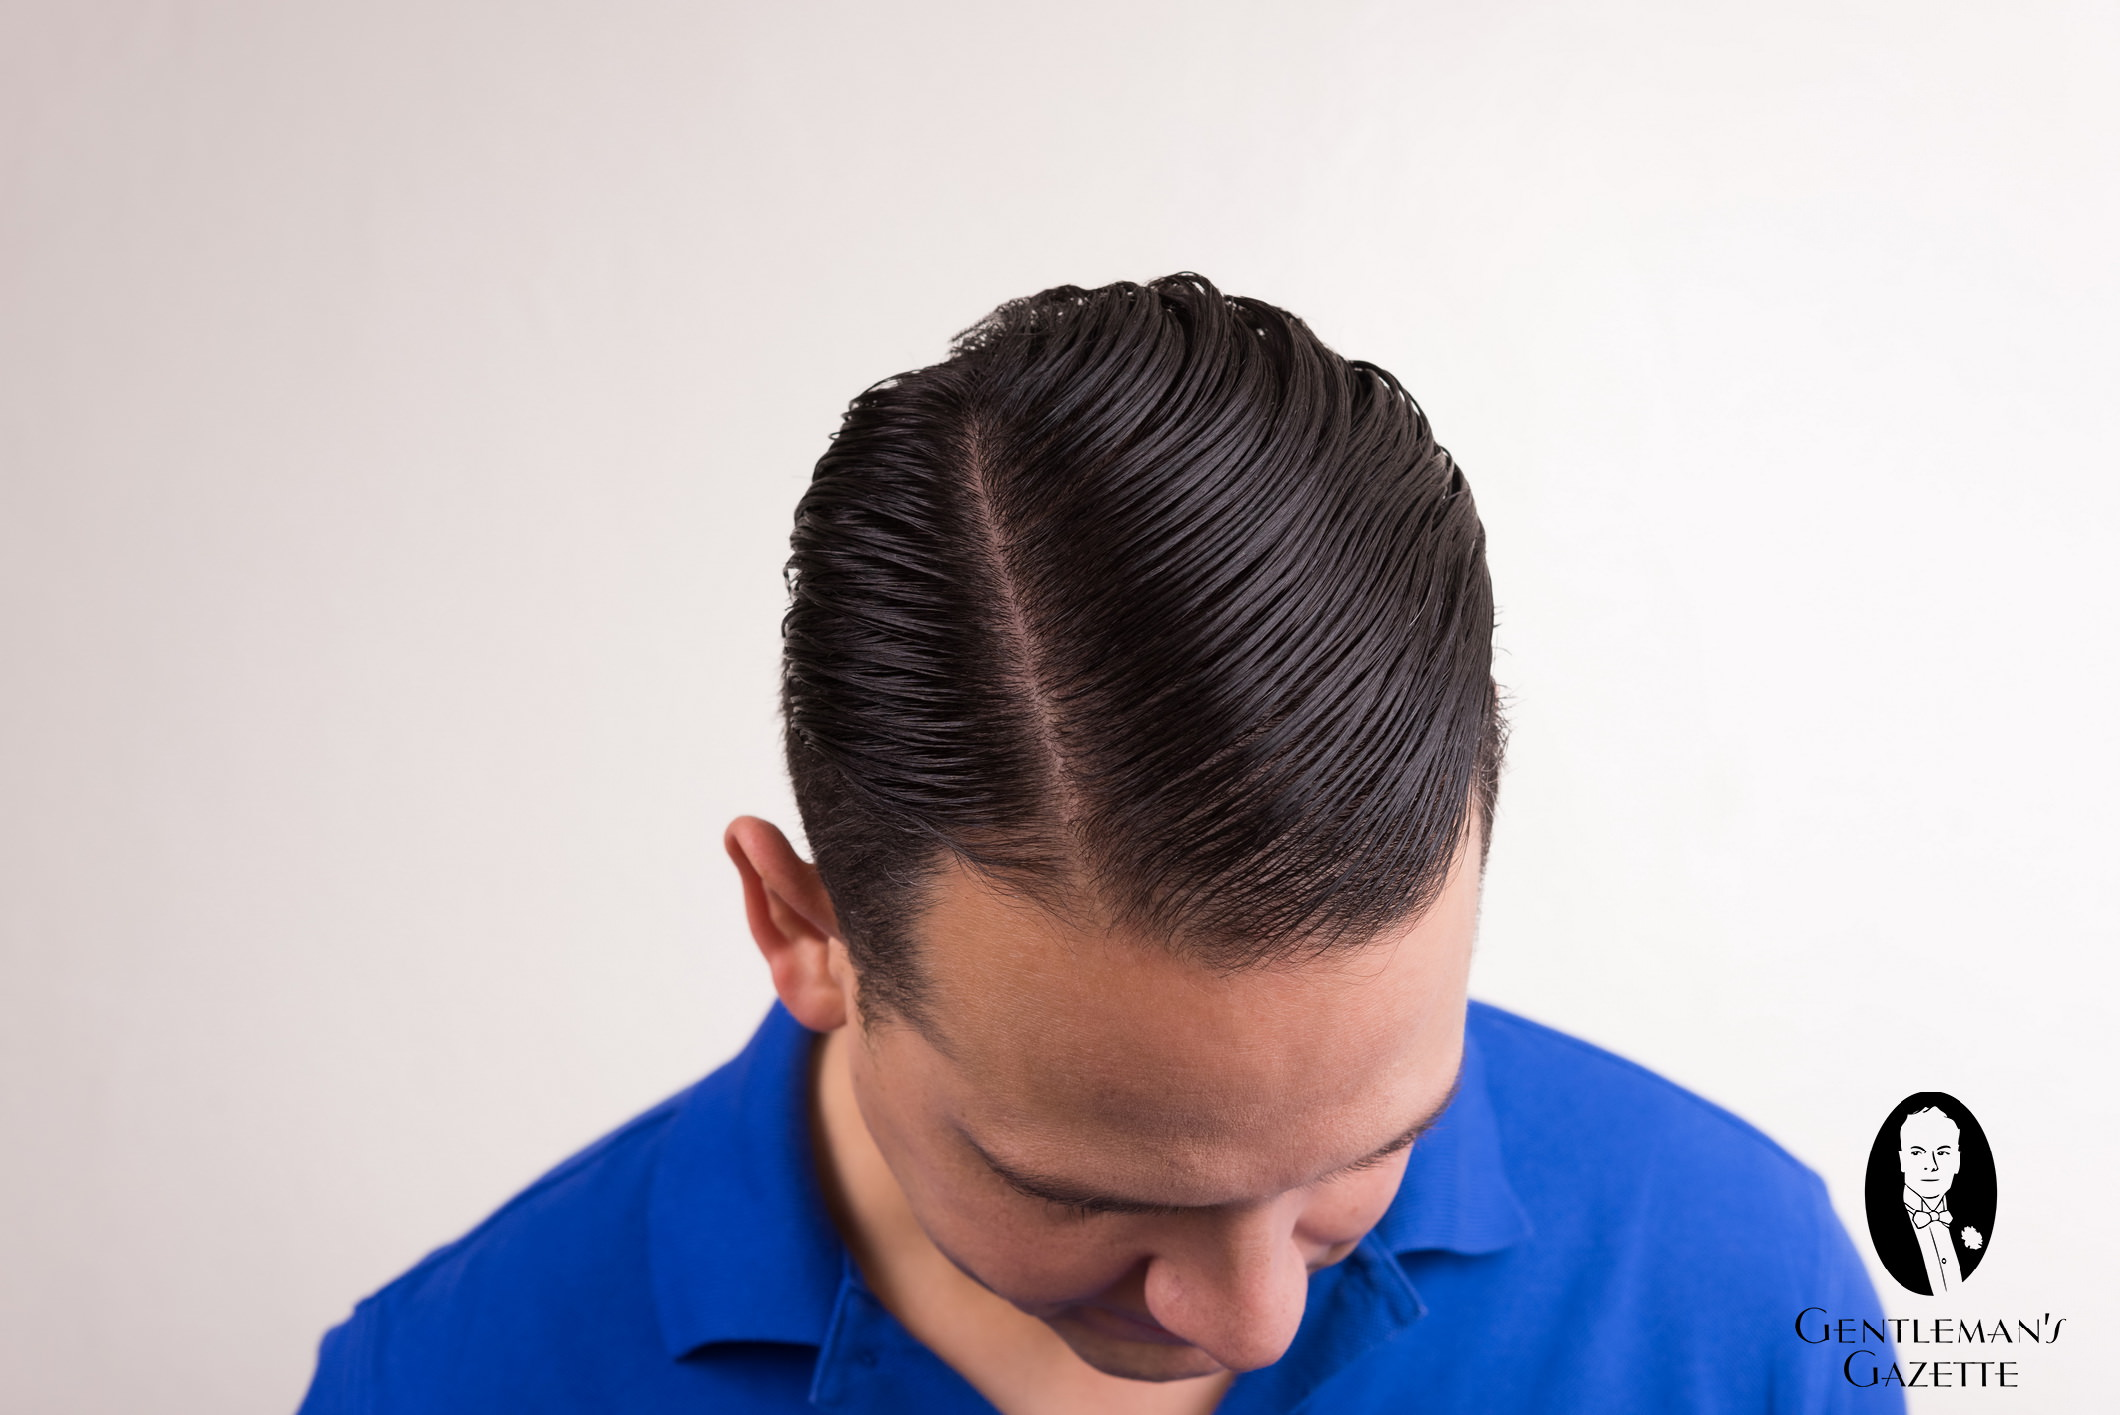 5 Classic Timelessly Stylish Hairstyles For Men Gentlemans Gazette